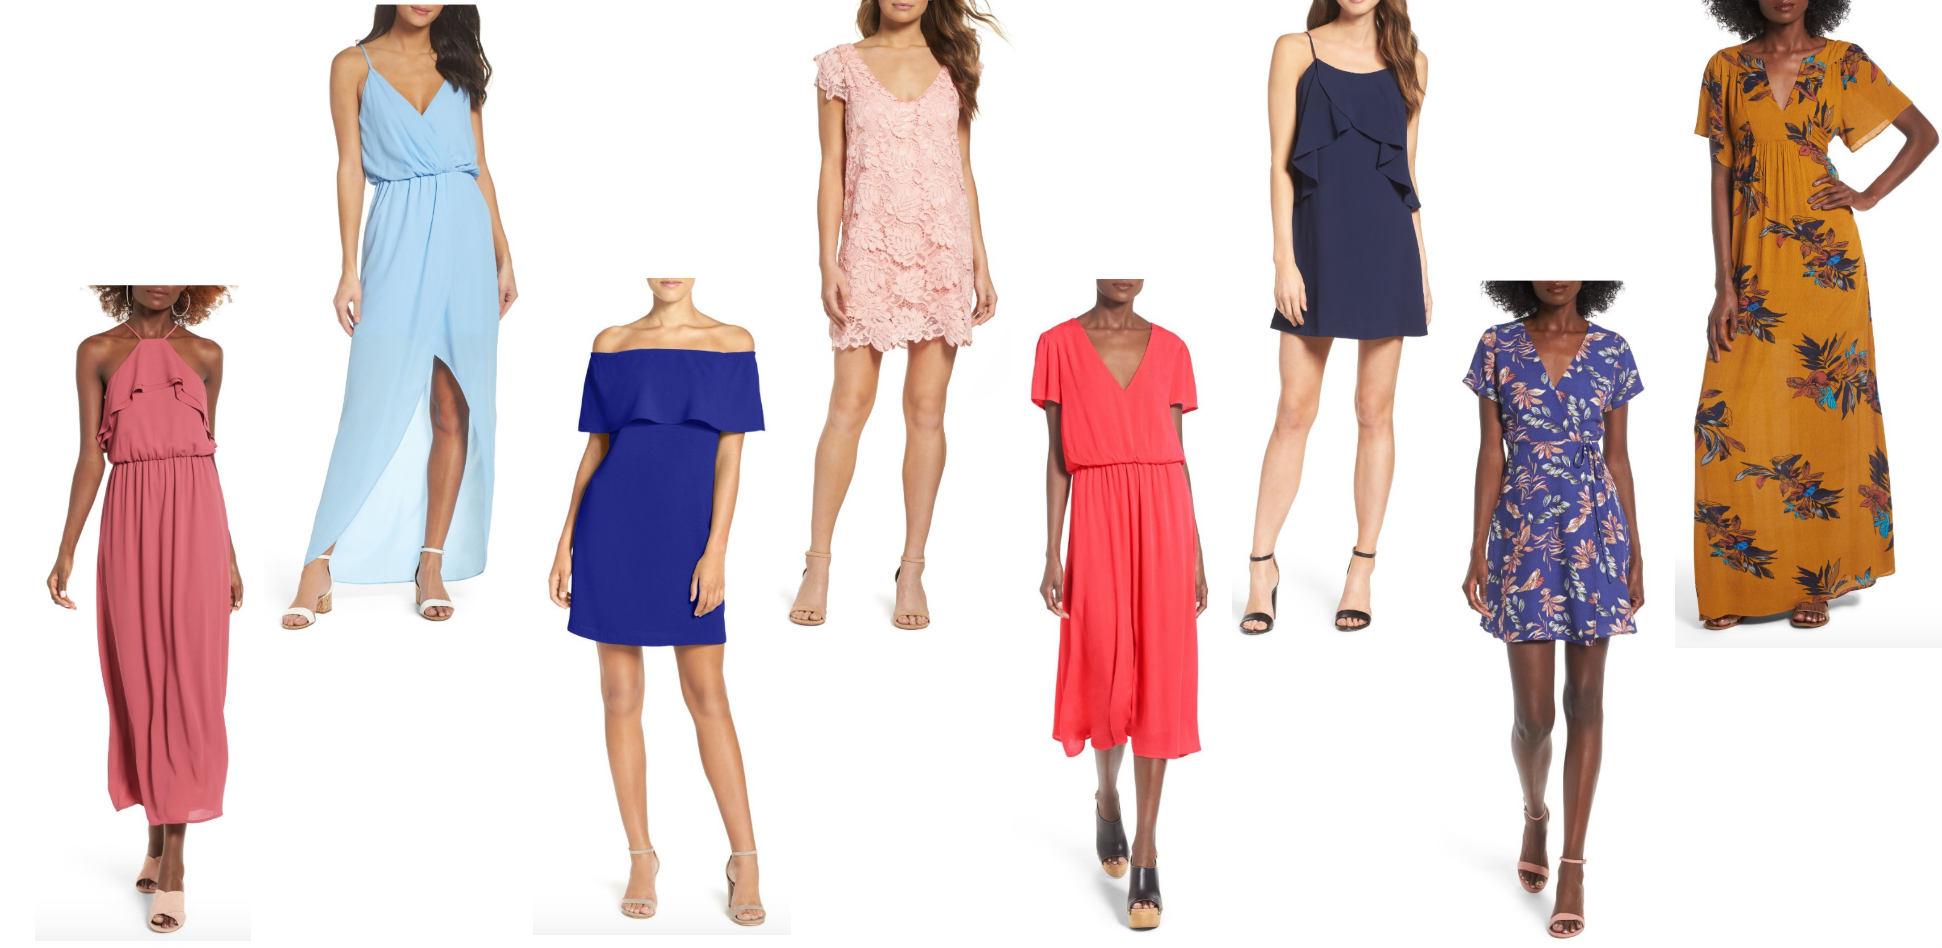 affordable summer dresses for weddings and baby showers